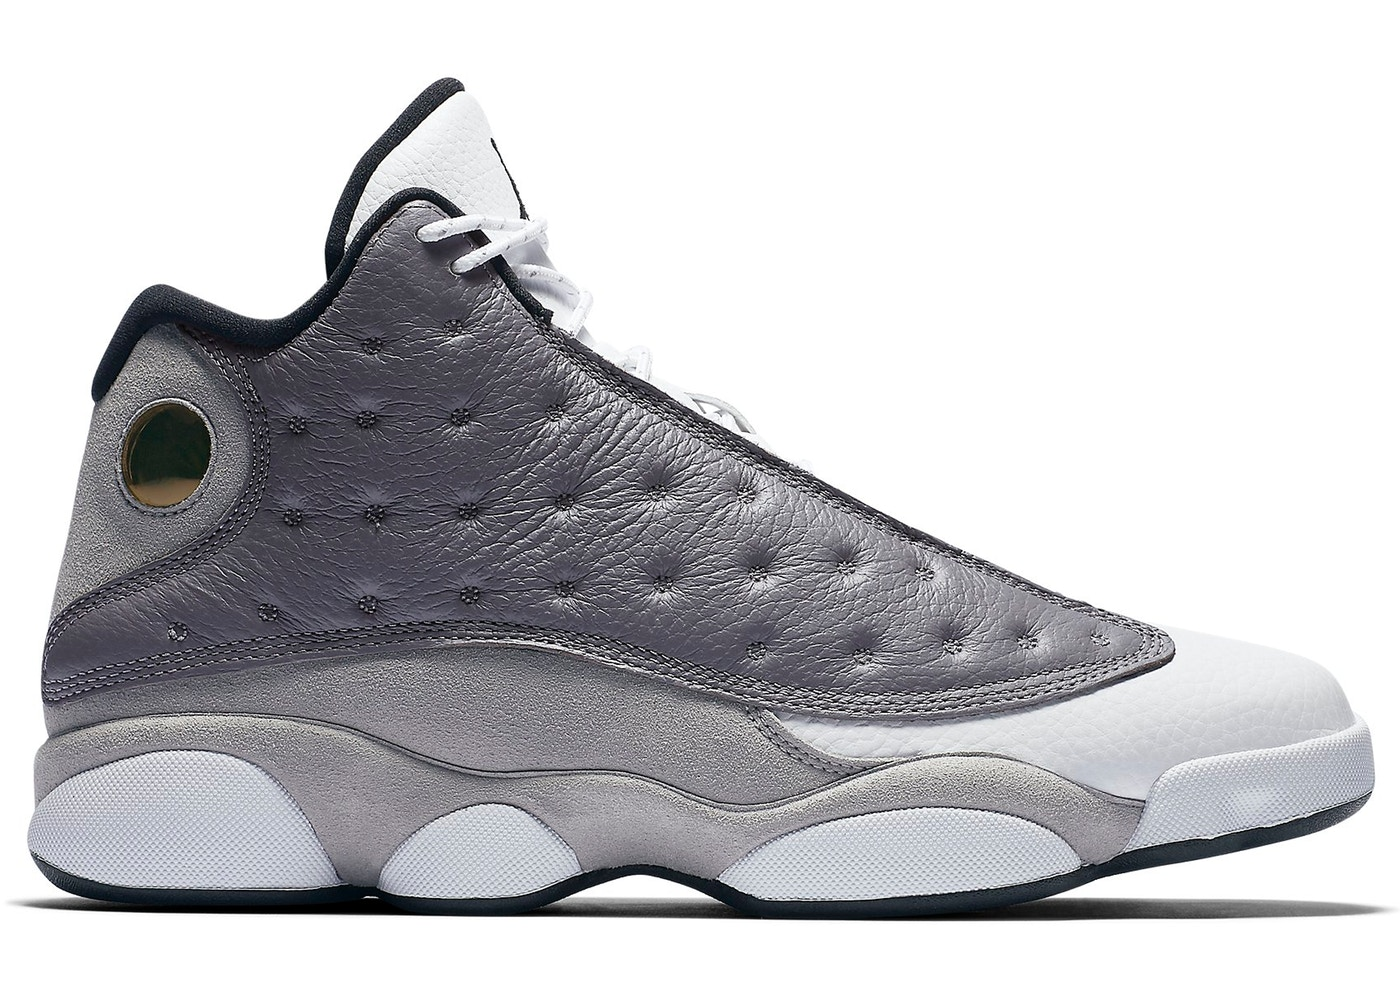 huge discount 057f4 c471e Jordan 13 Retro Atmosphere Grey - 414571-016